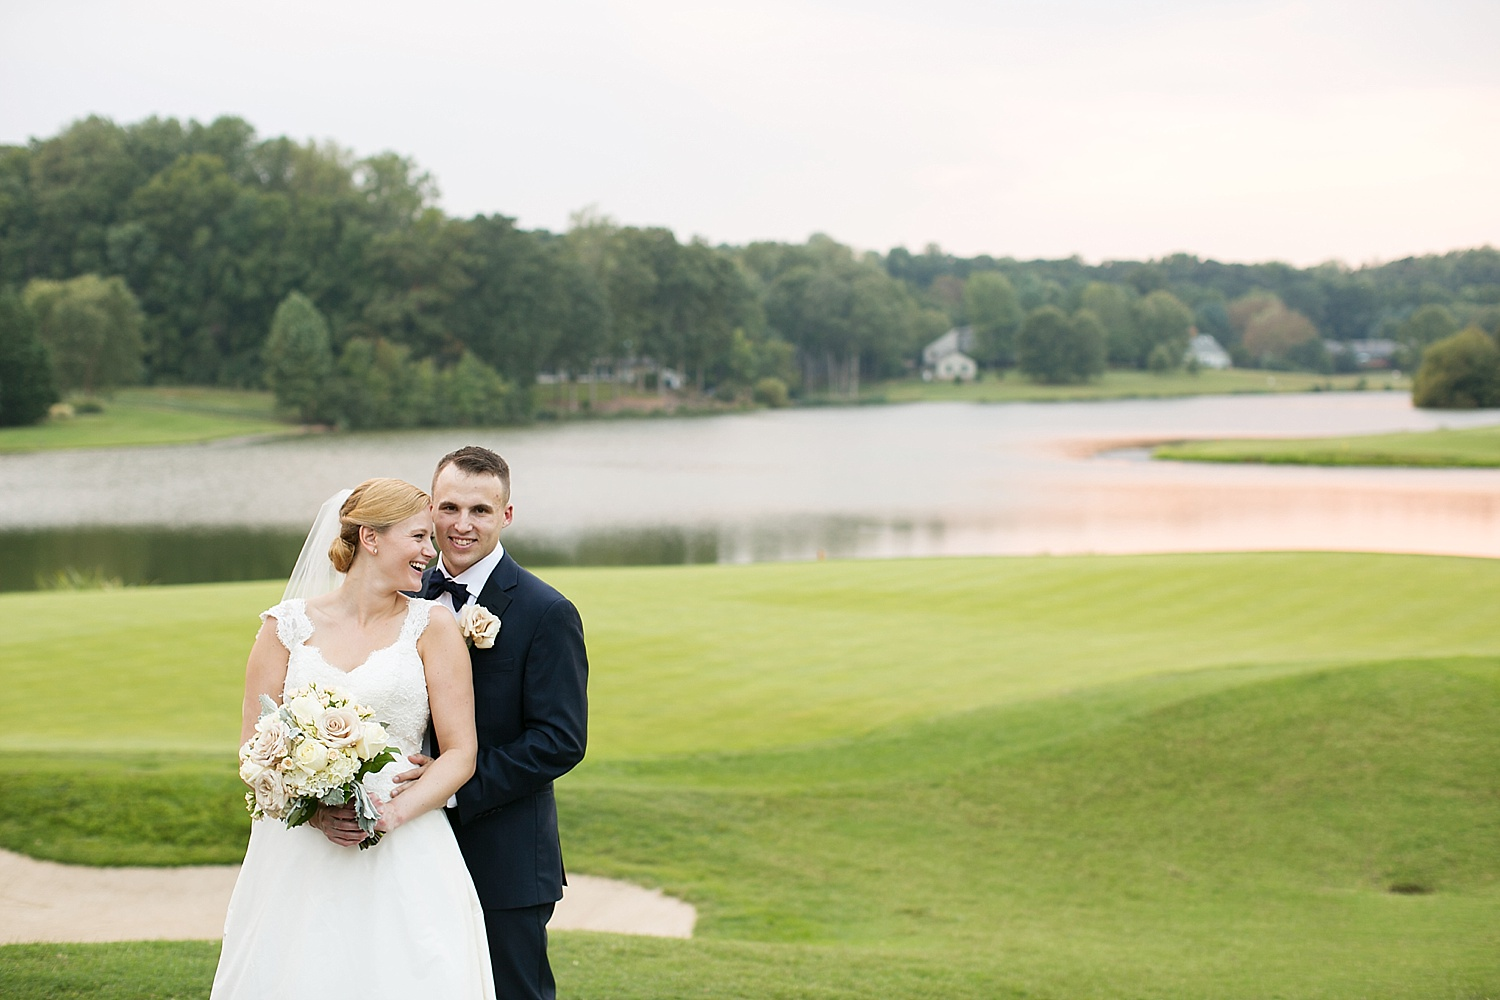 Richmond VA Wedding Photographer_0030-1.jpg